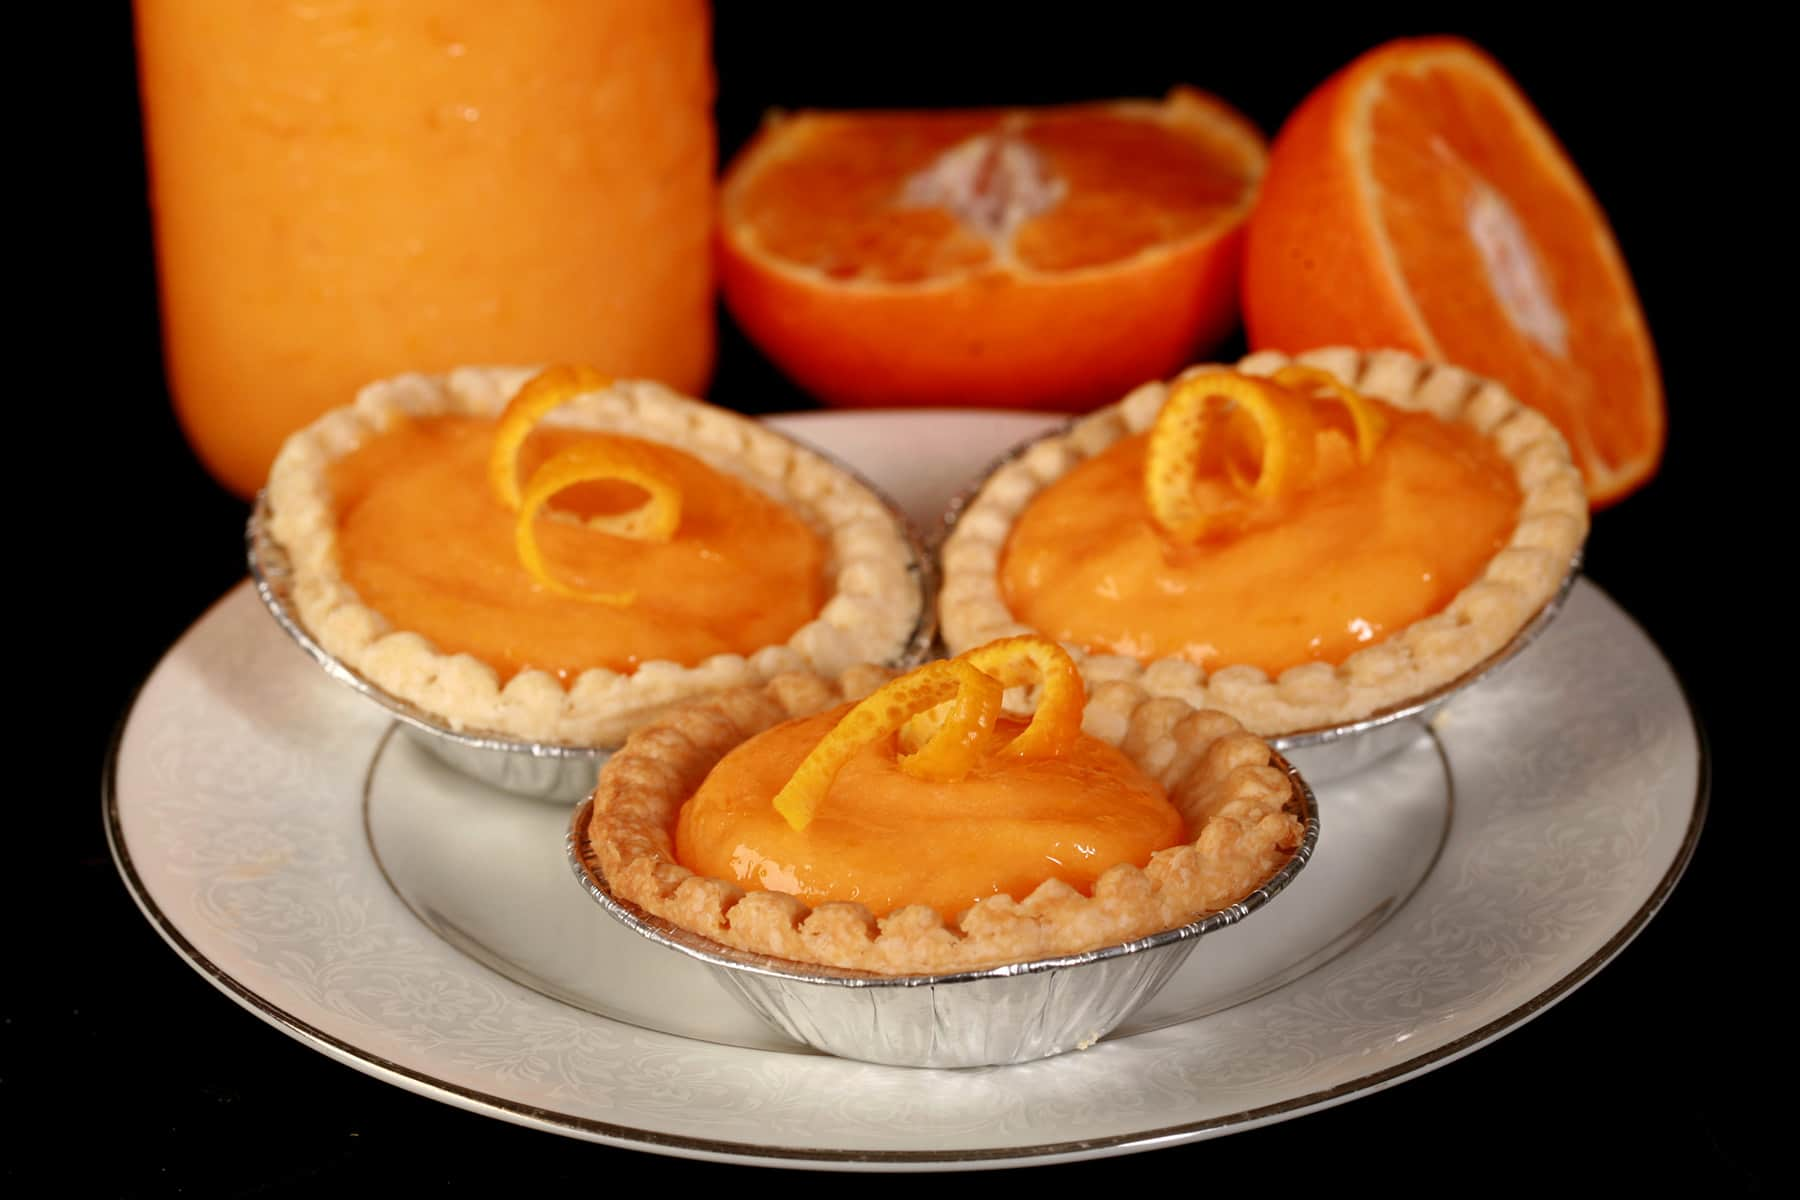 3 orange tarts on a plate. There is a jar of curd and an orange next to the plate.